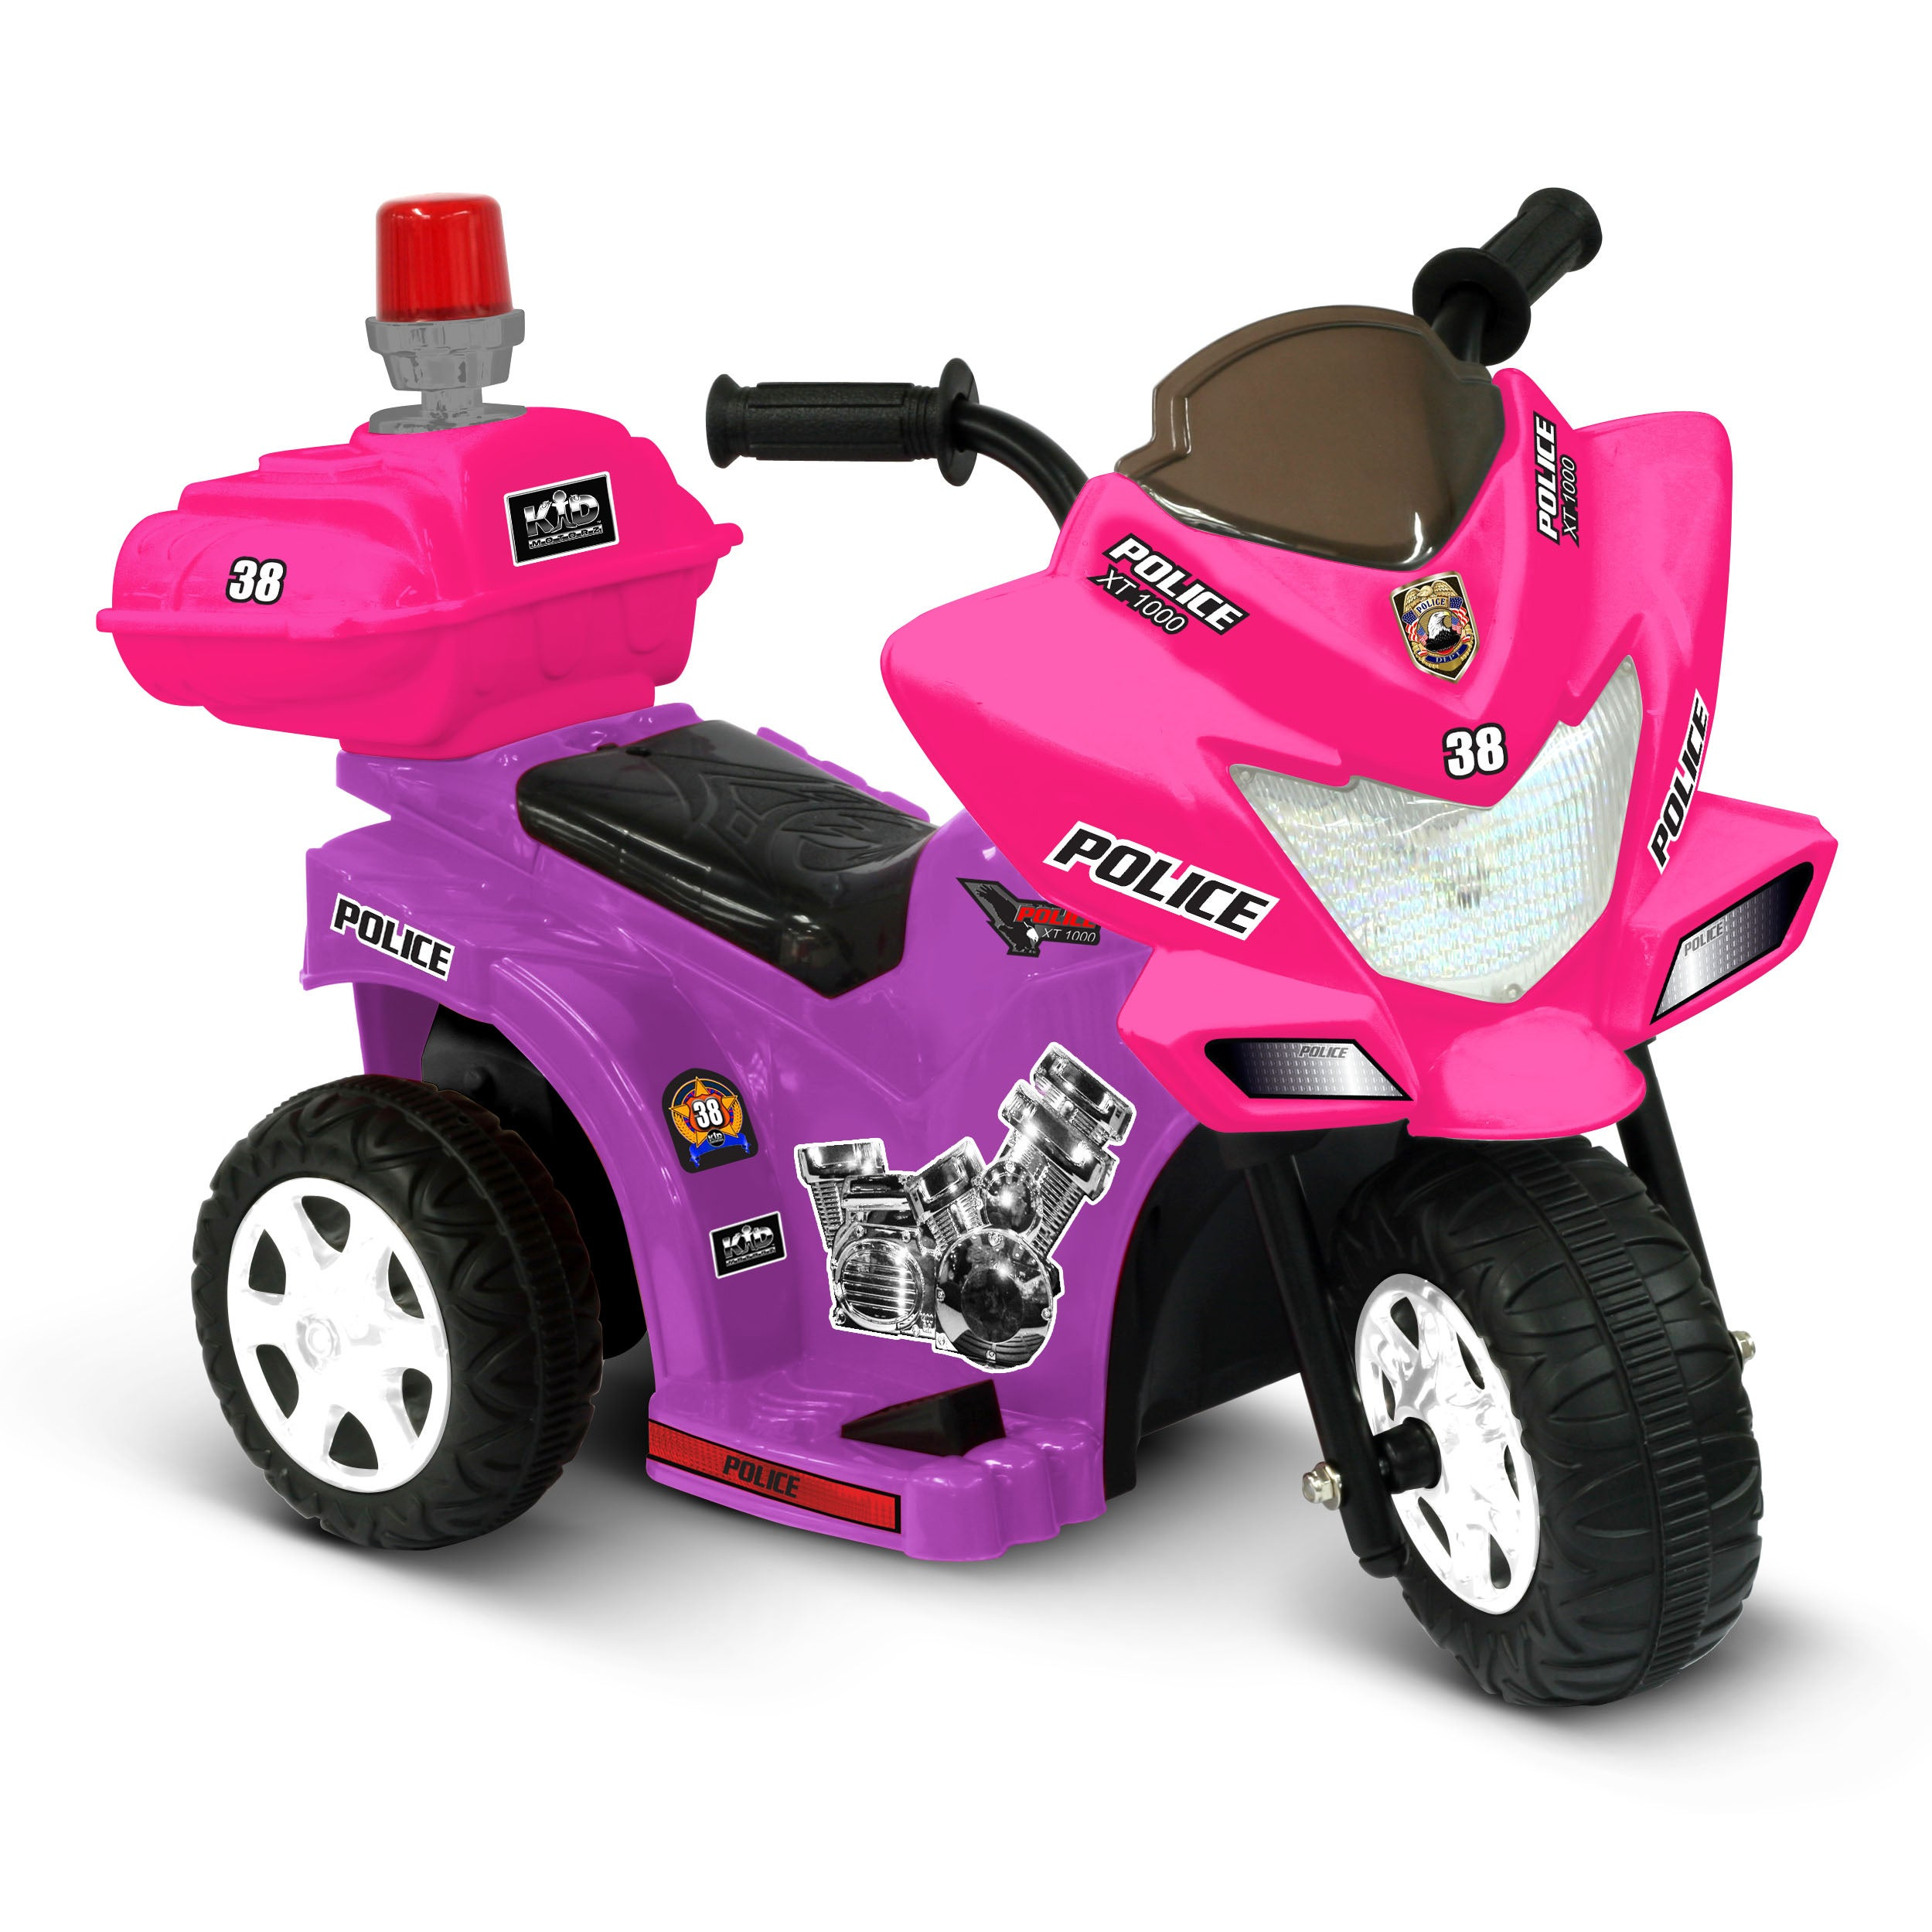 Buy Assembled Powered Riding Toys Online at Overstock.com | Our Best ...